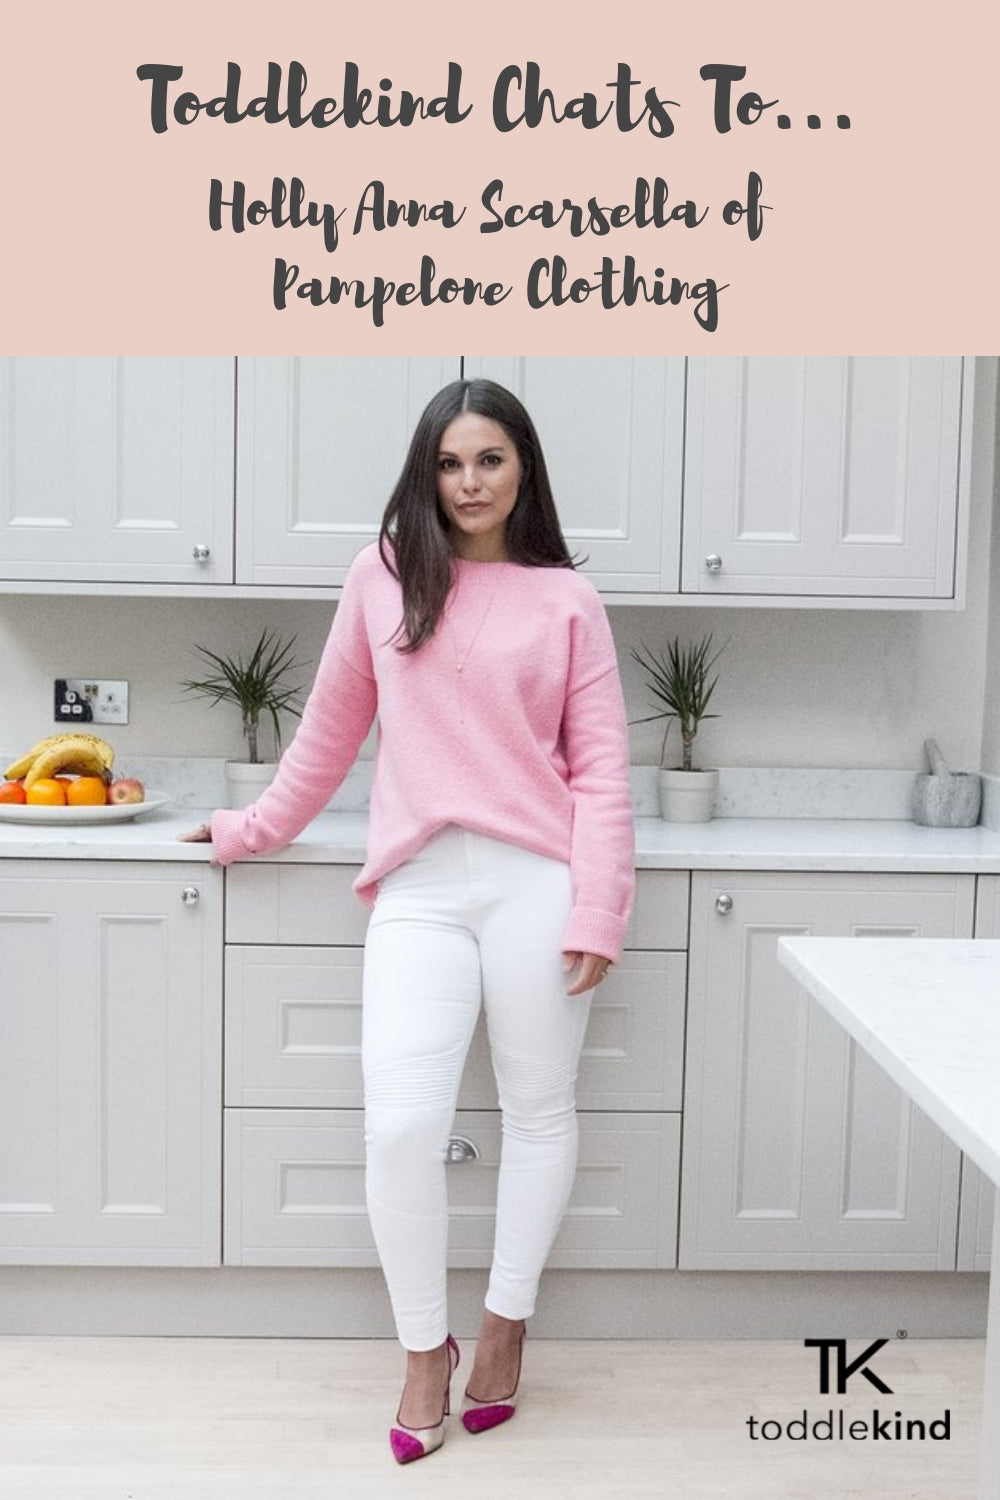 Toddlekind Pinterest Holly Anna Scarsella of Pampelone Clothing